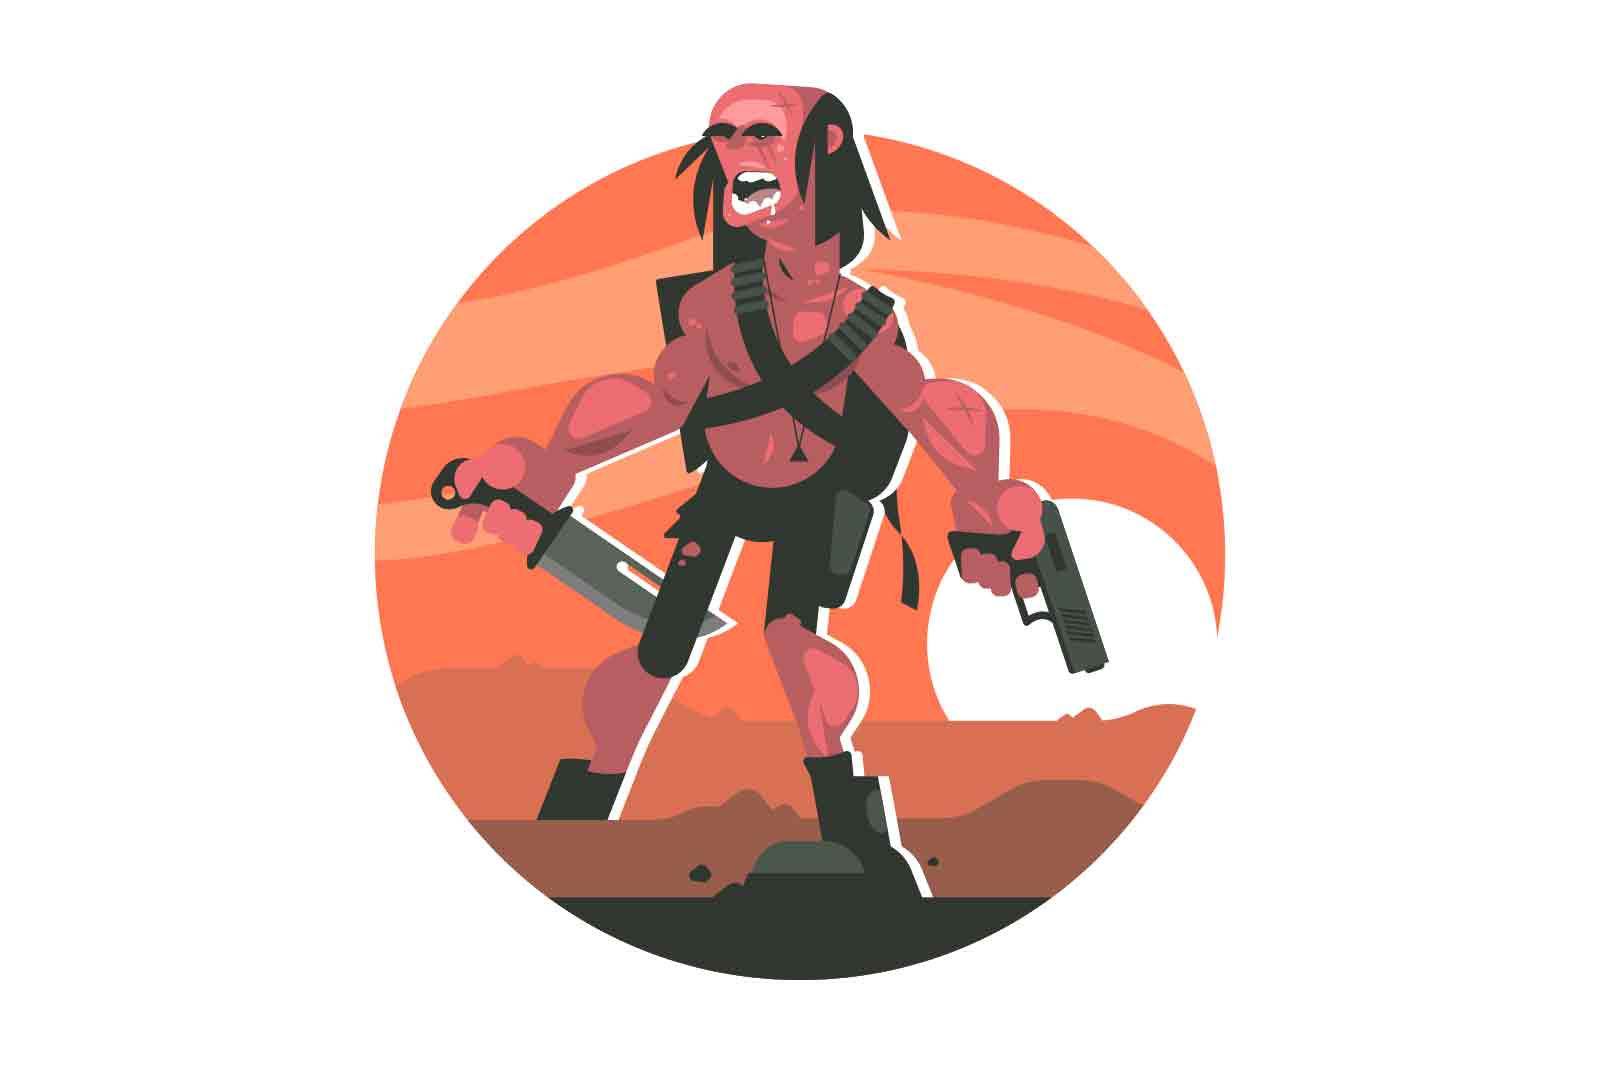 Cruel wanderer with weapons vector illustration. Terrible man holding gun and knife in hands concept. Horrible guy with firearms on battle field.